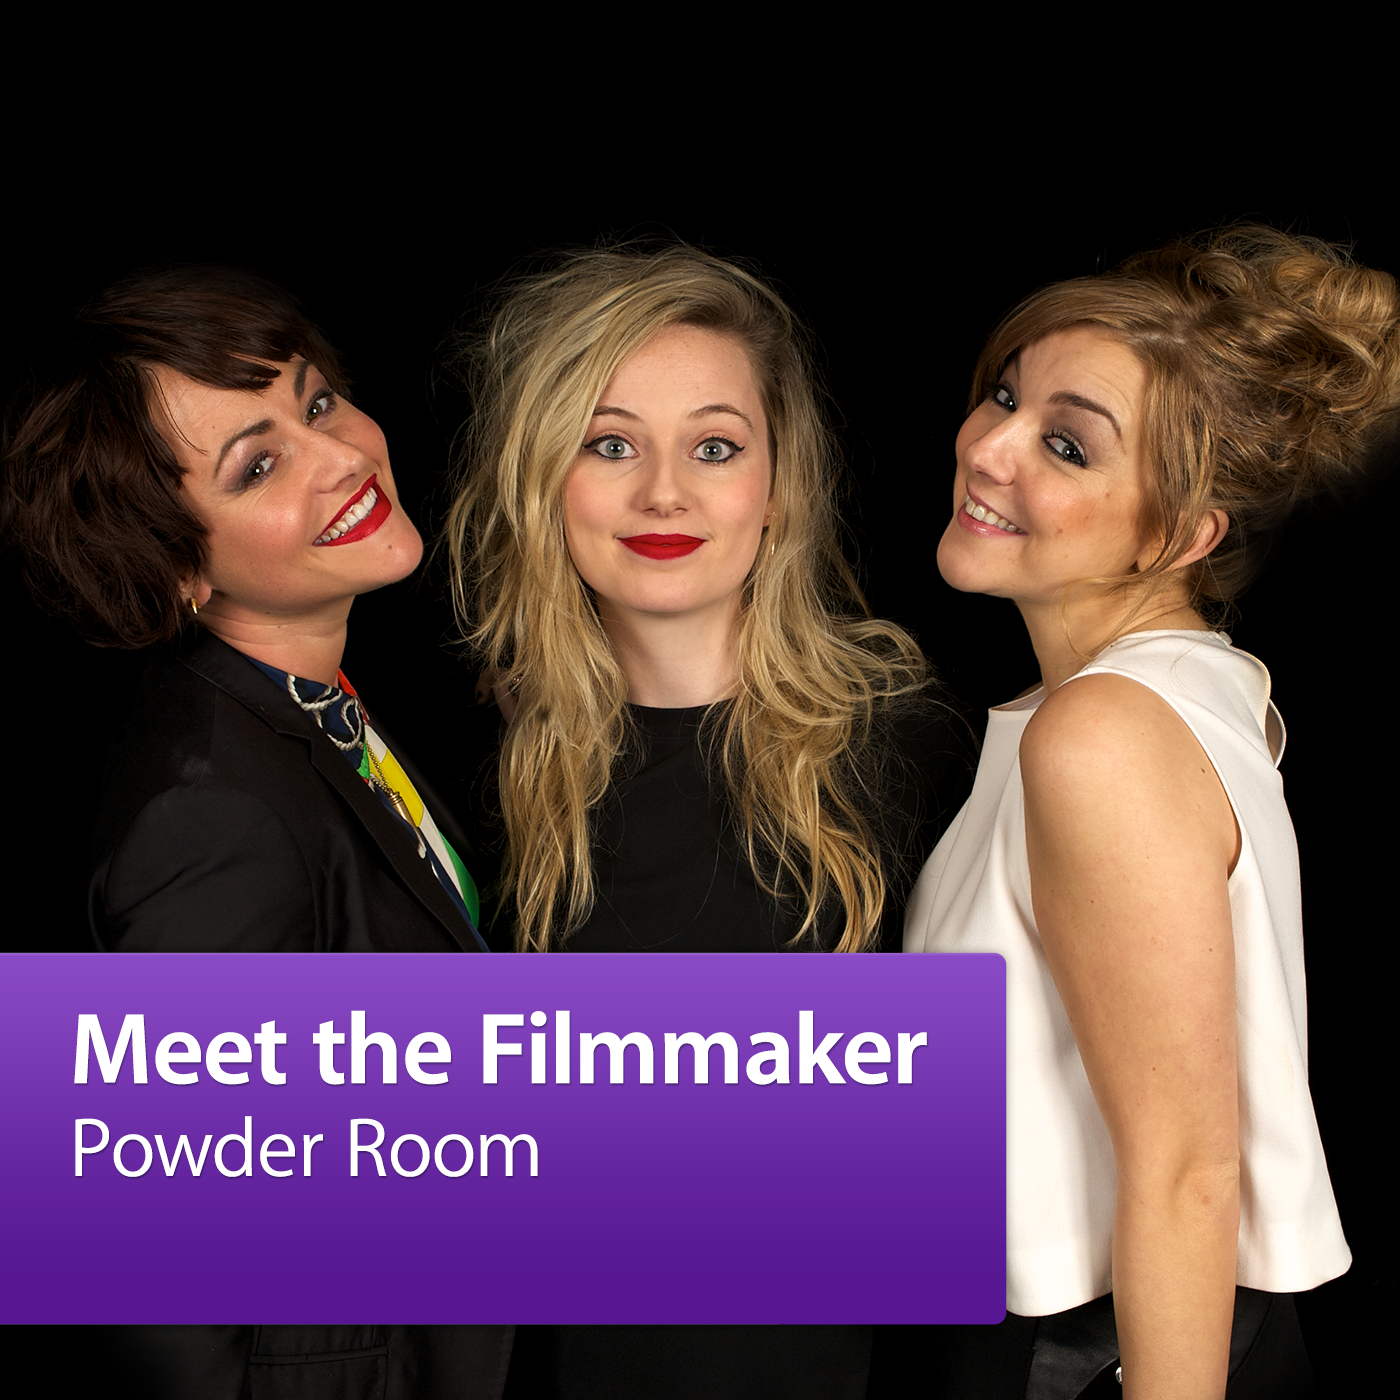 Powder Room: Meet the Filmmaker